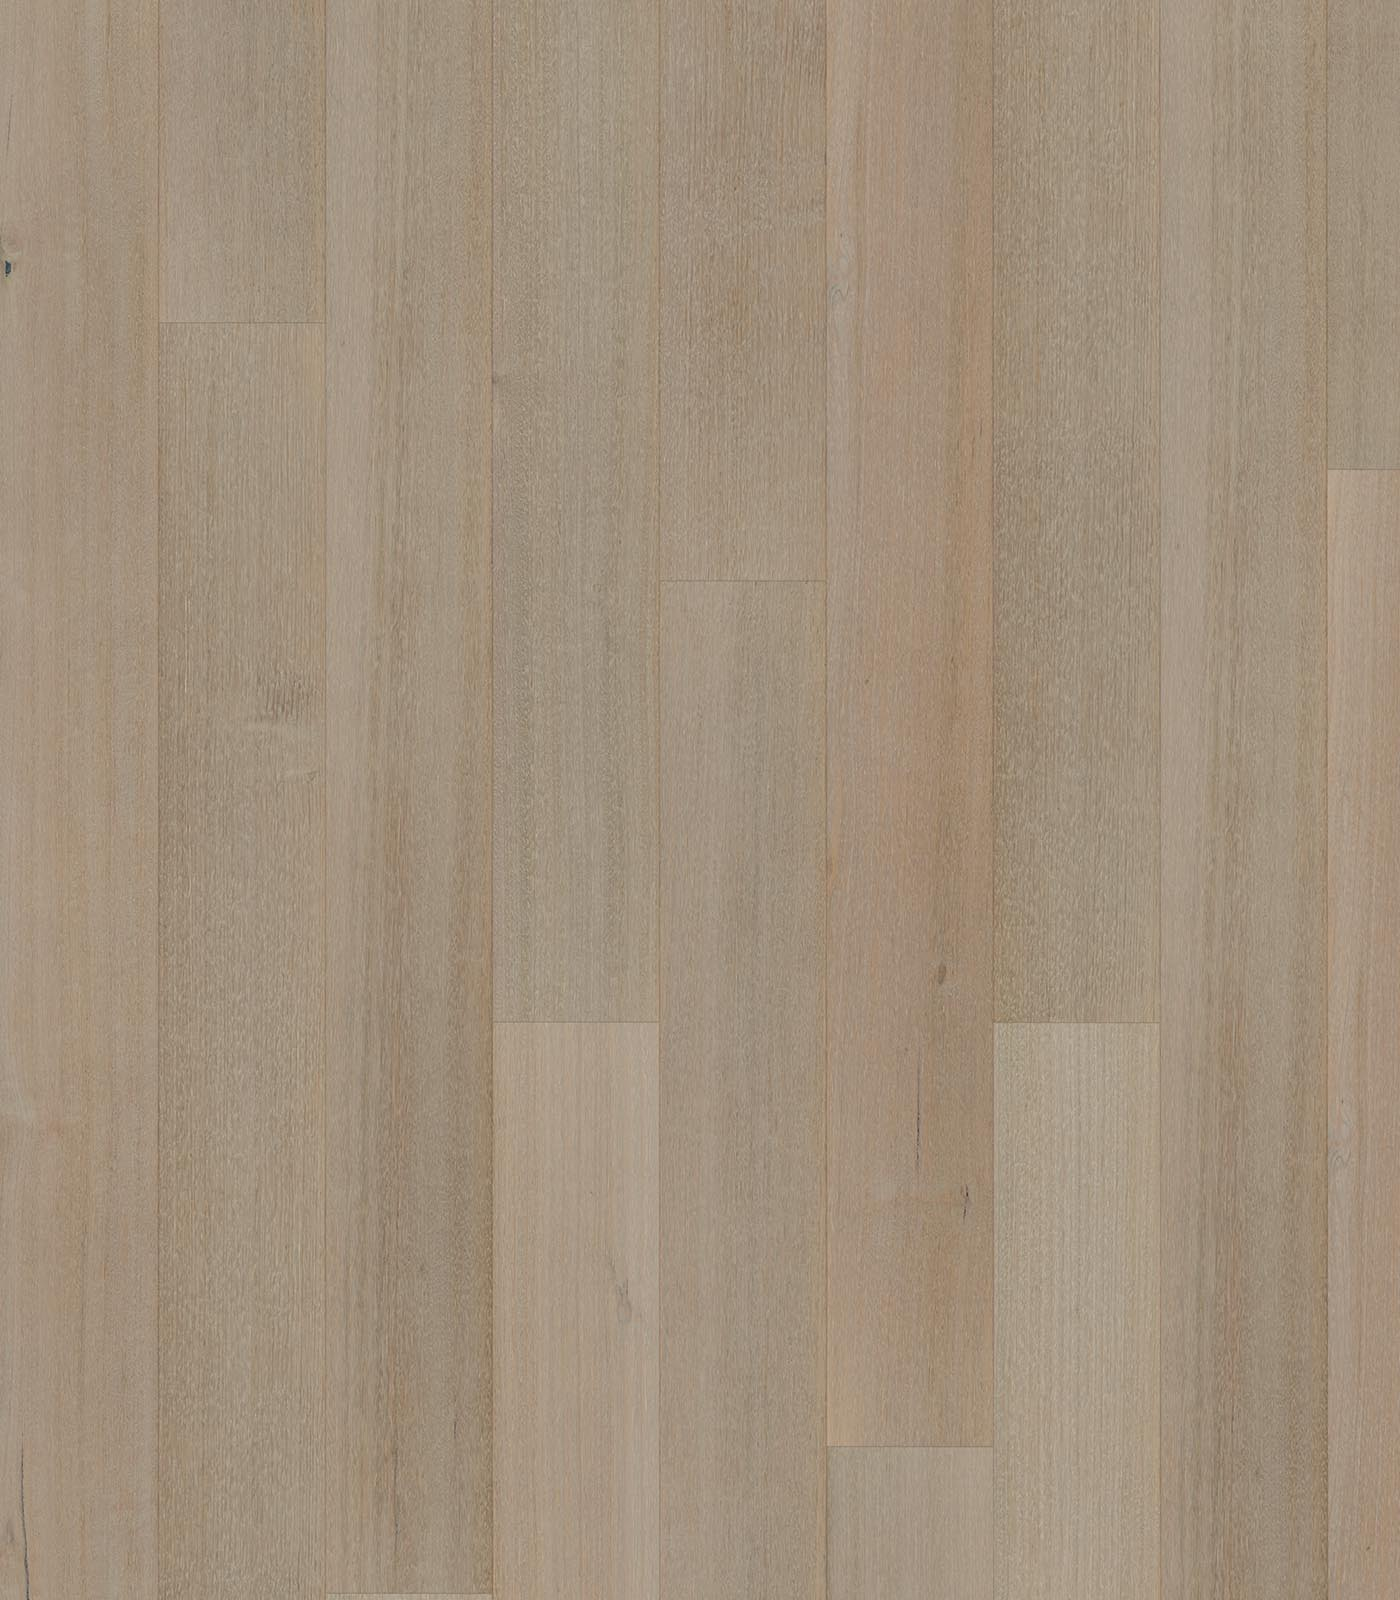 Kingston-After Oak Collection-Tasmanian Oak Floors-flat